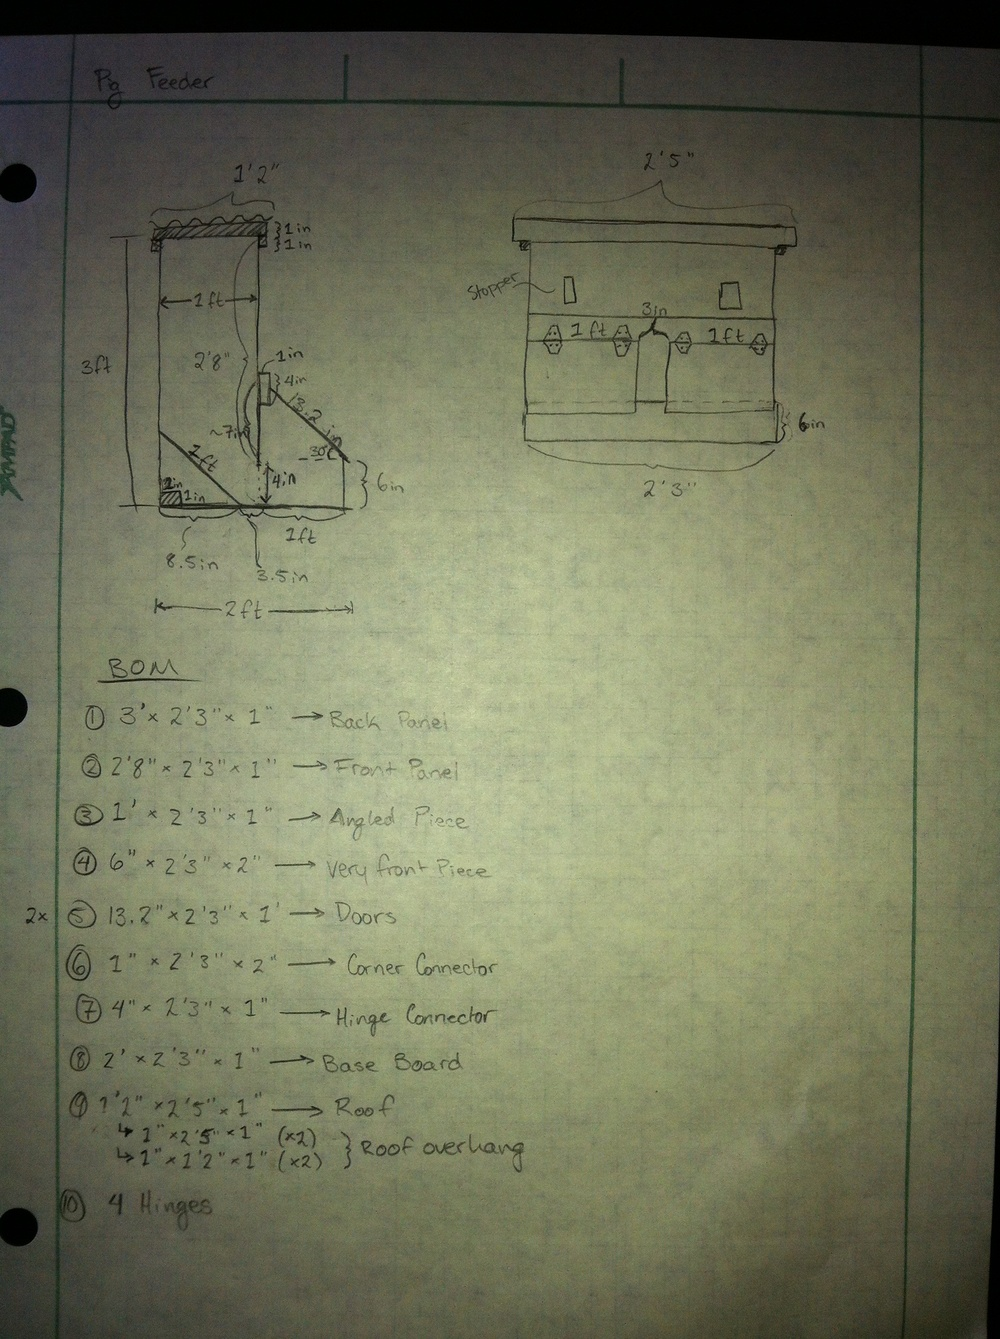 Drawn Pig Feeder Design and Bill of Materials